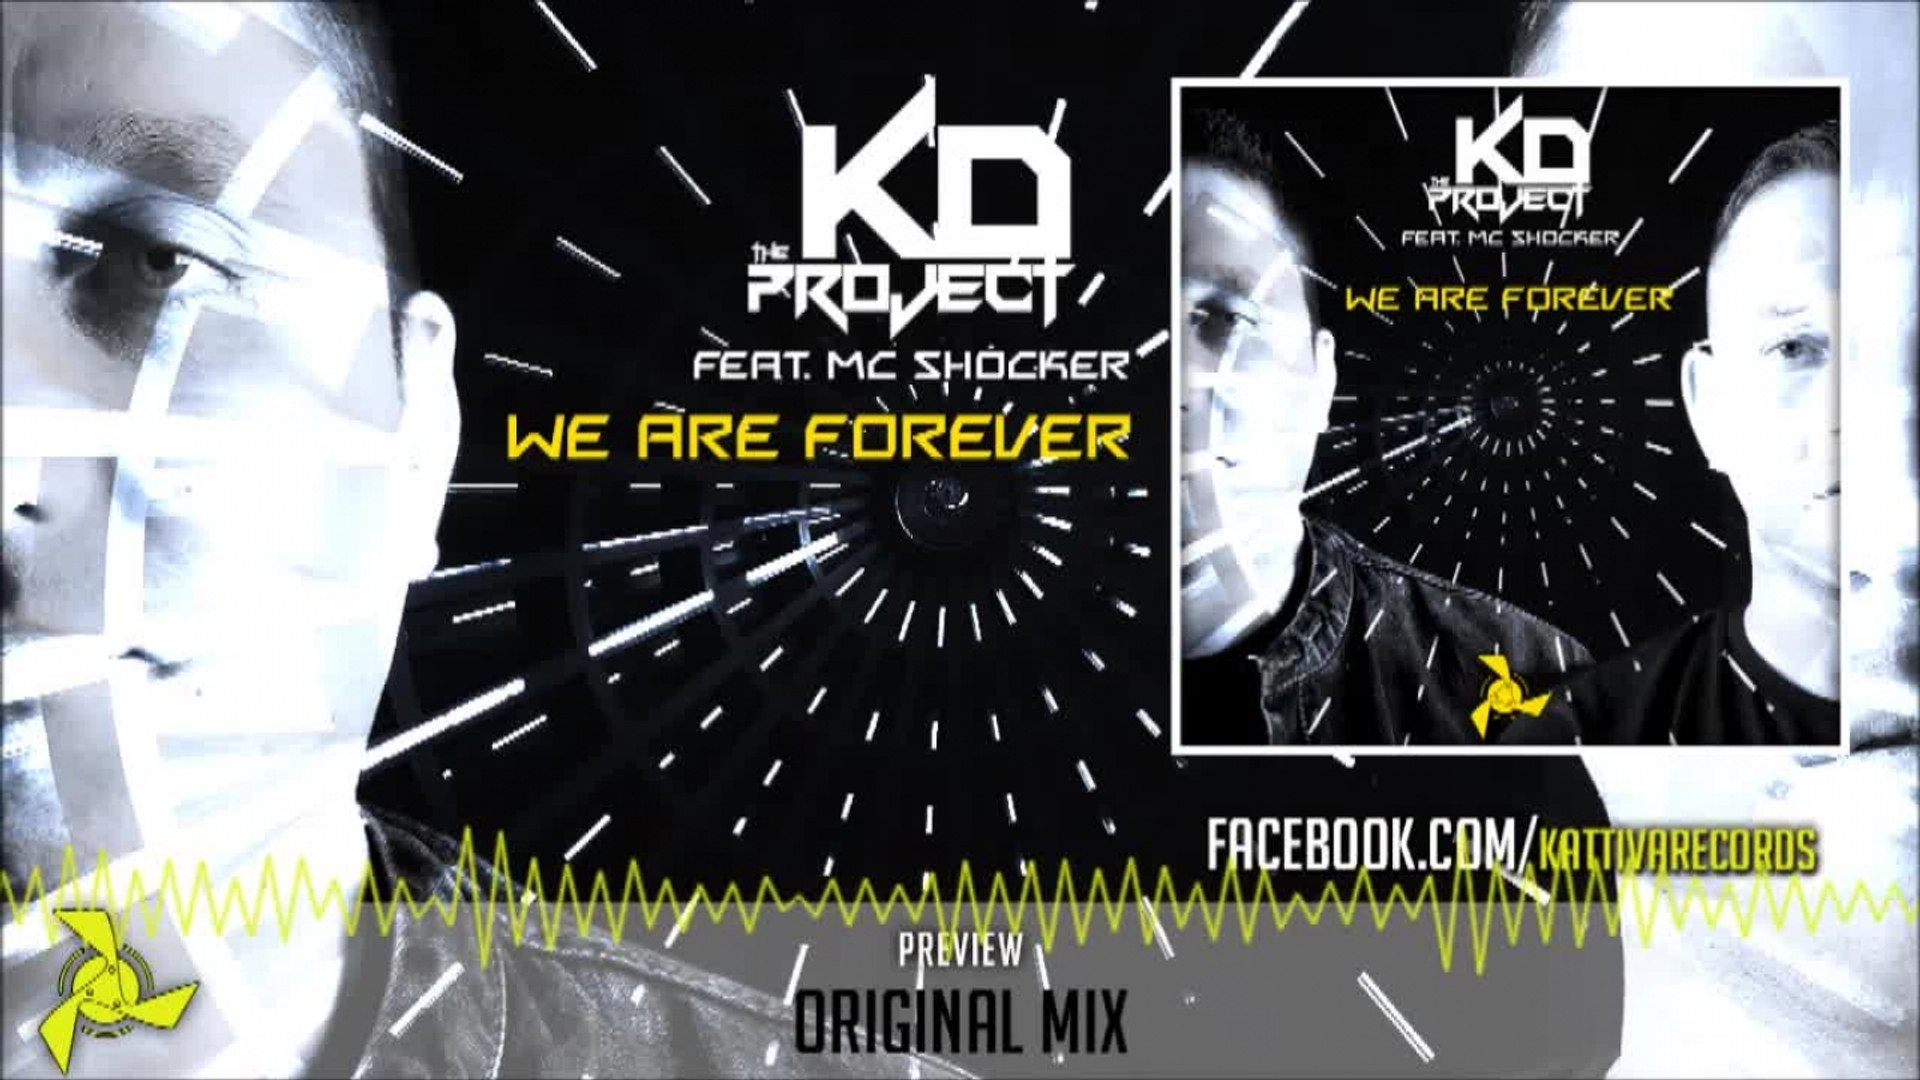 The KD Project Ft. MC Shocker - We Are Forever - Official Preview (KAT124)